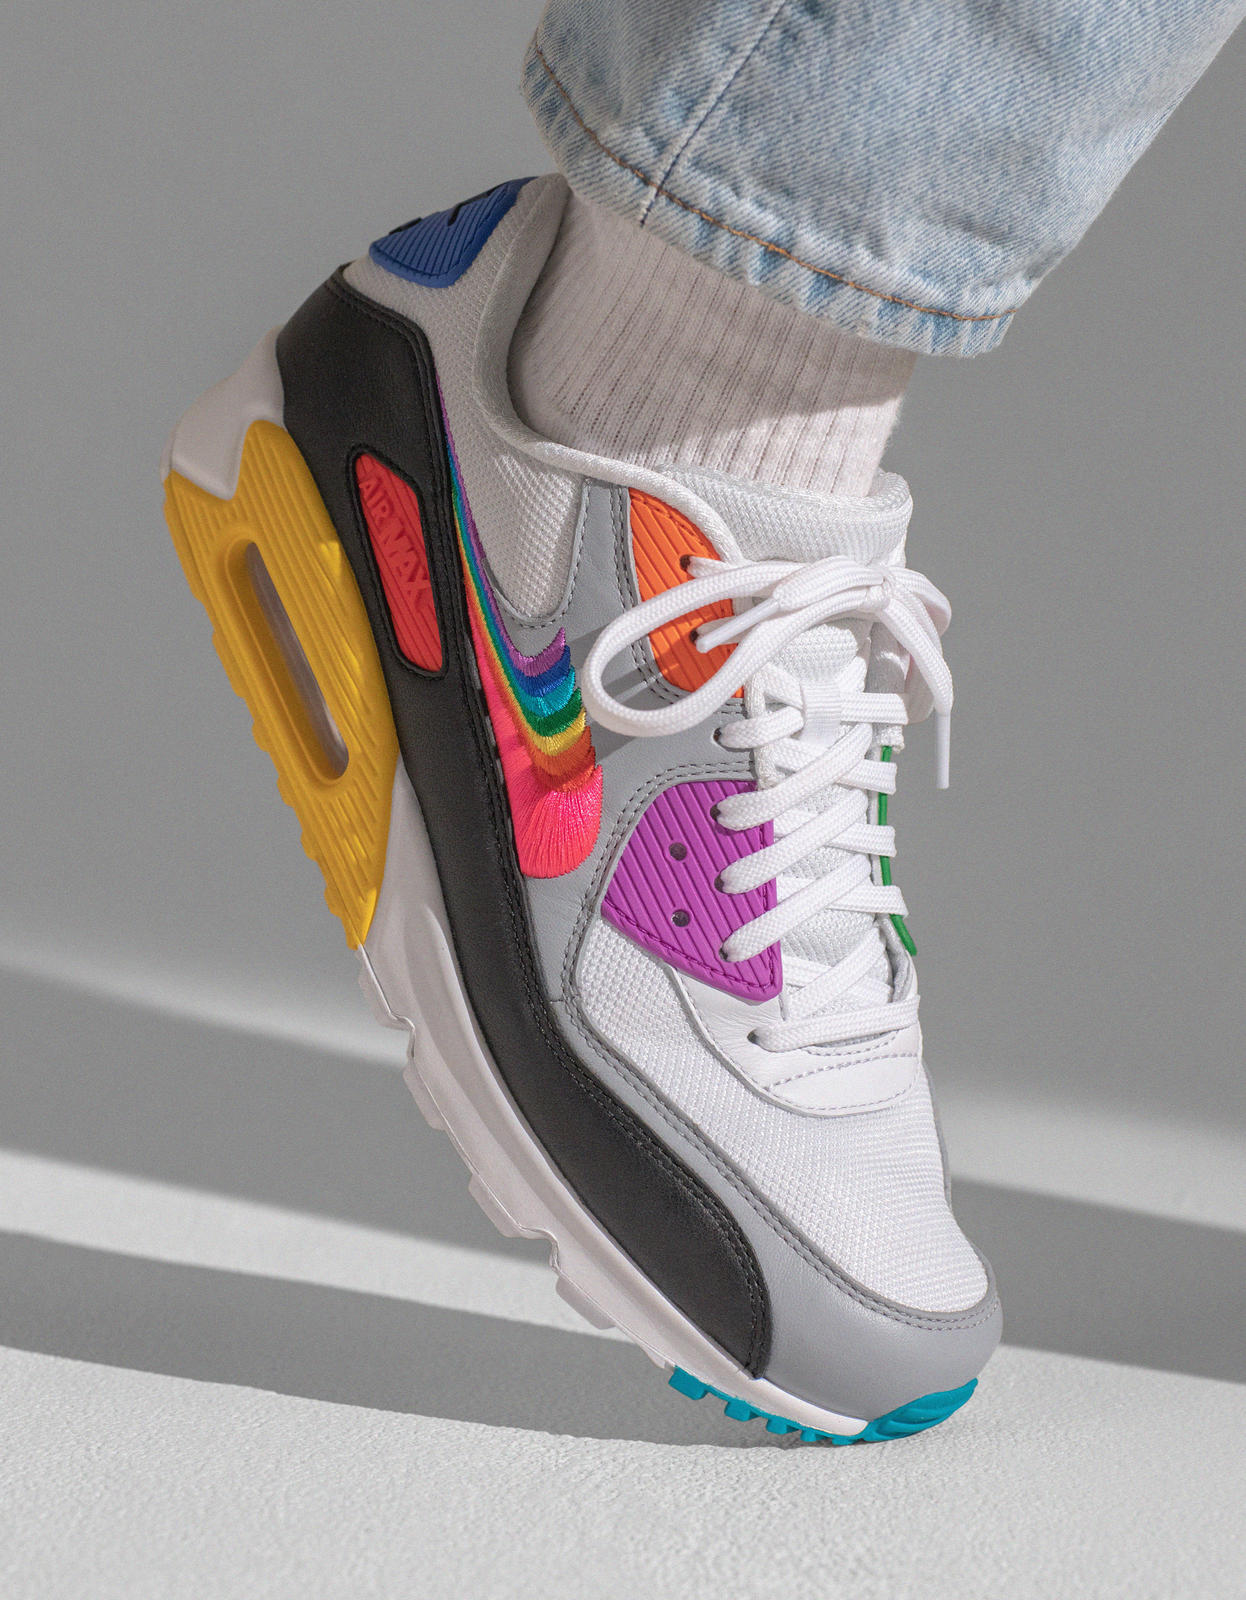 premium selection 4b193 eea48 Nike Air Max 90 Be True 2019 Collection